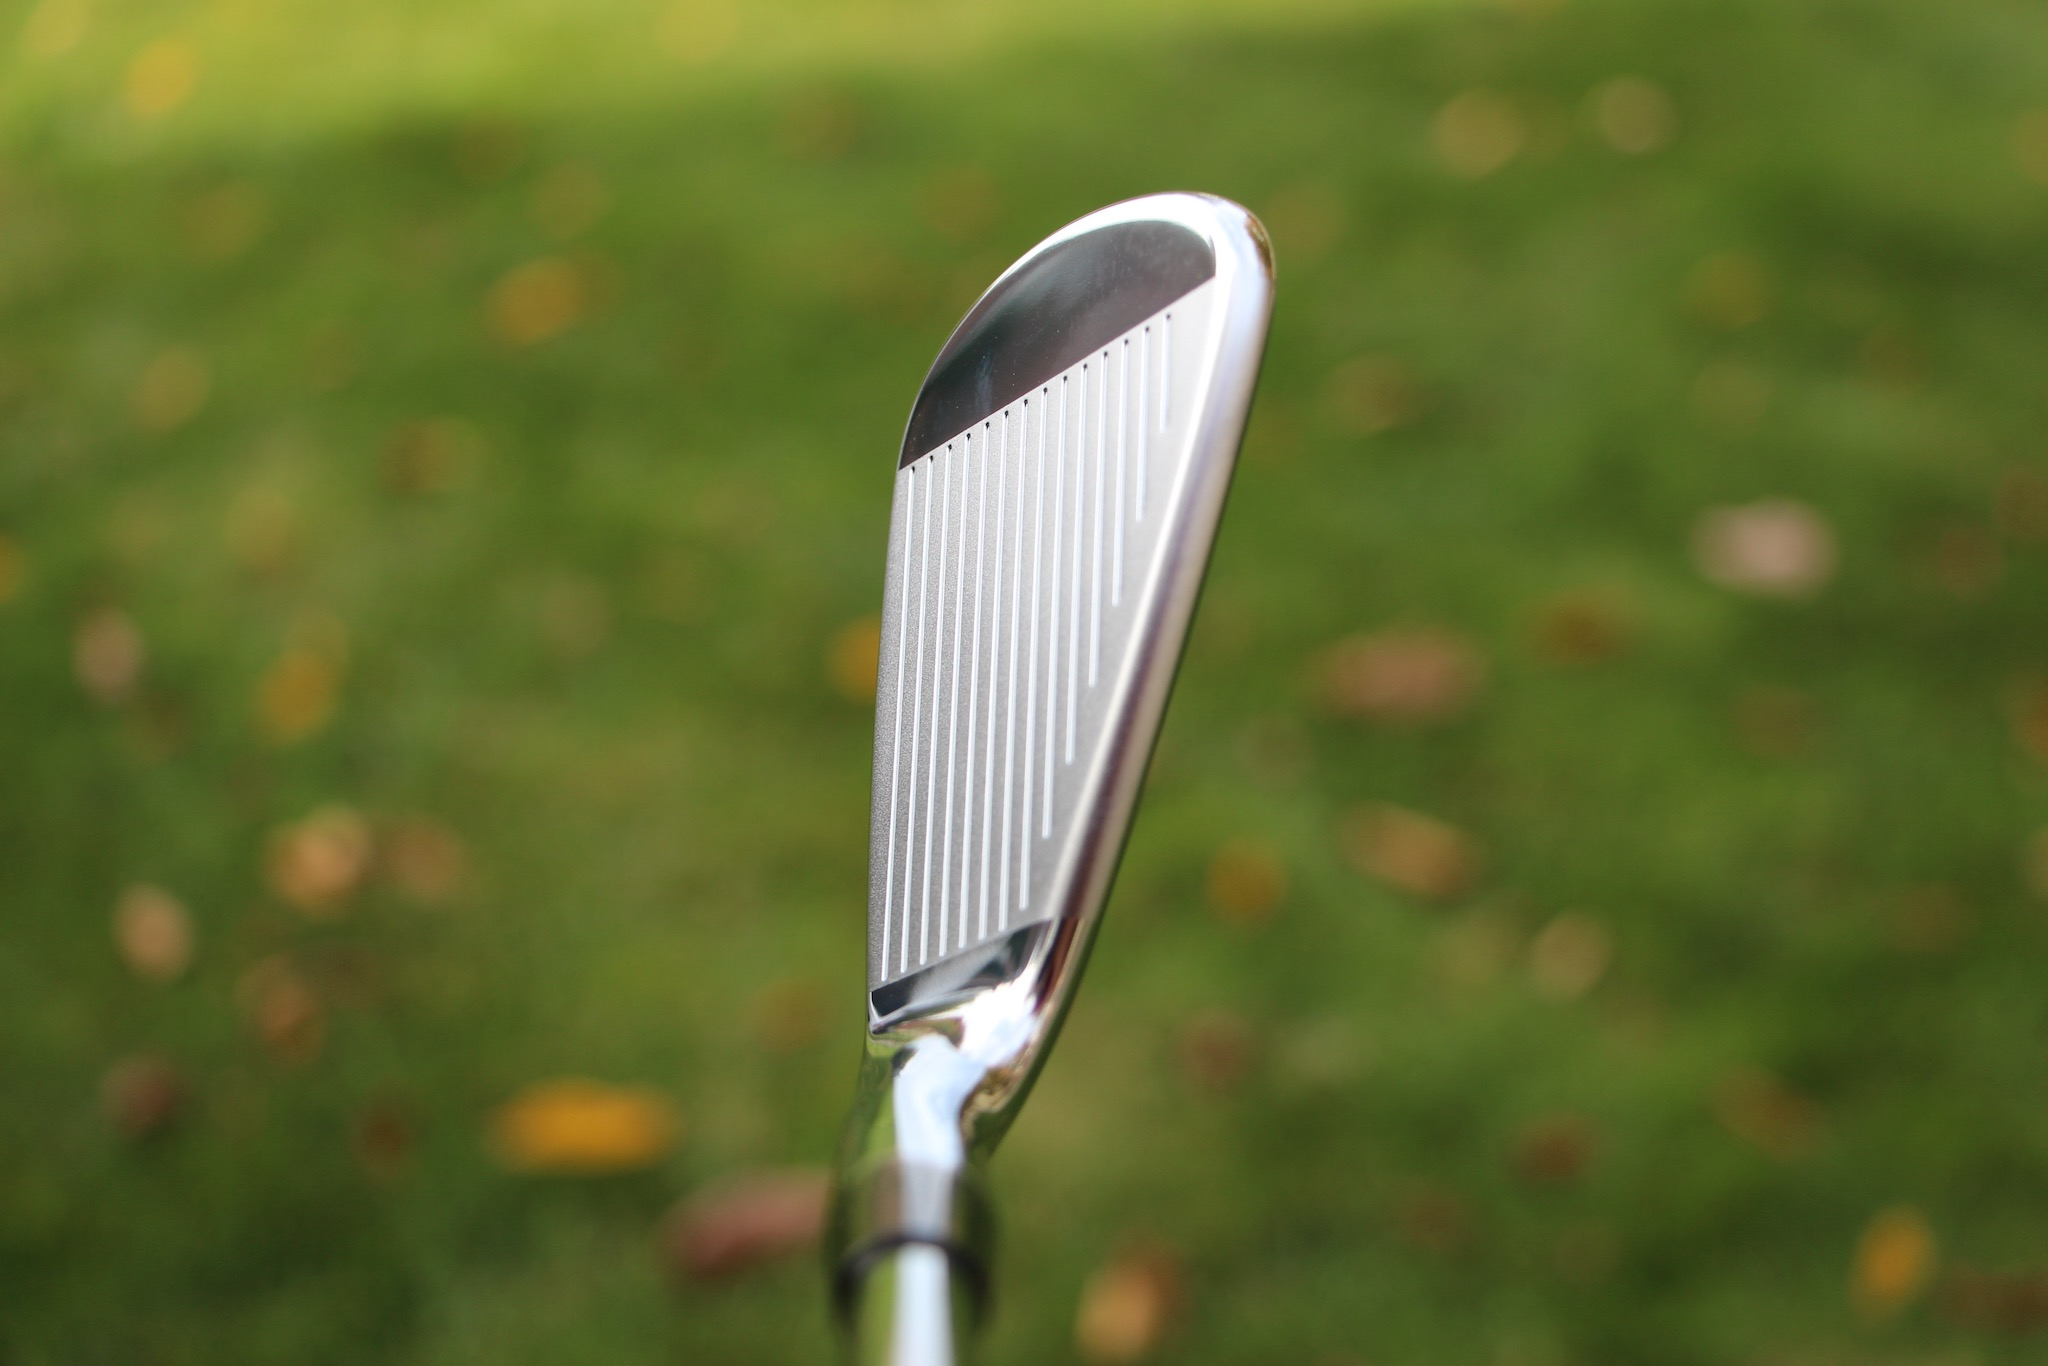 Cobra King Tour MIM 7-iron - cavity view